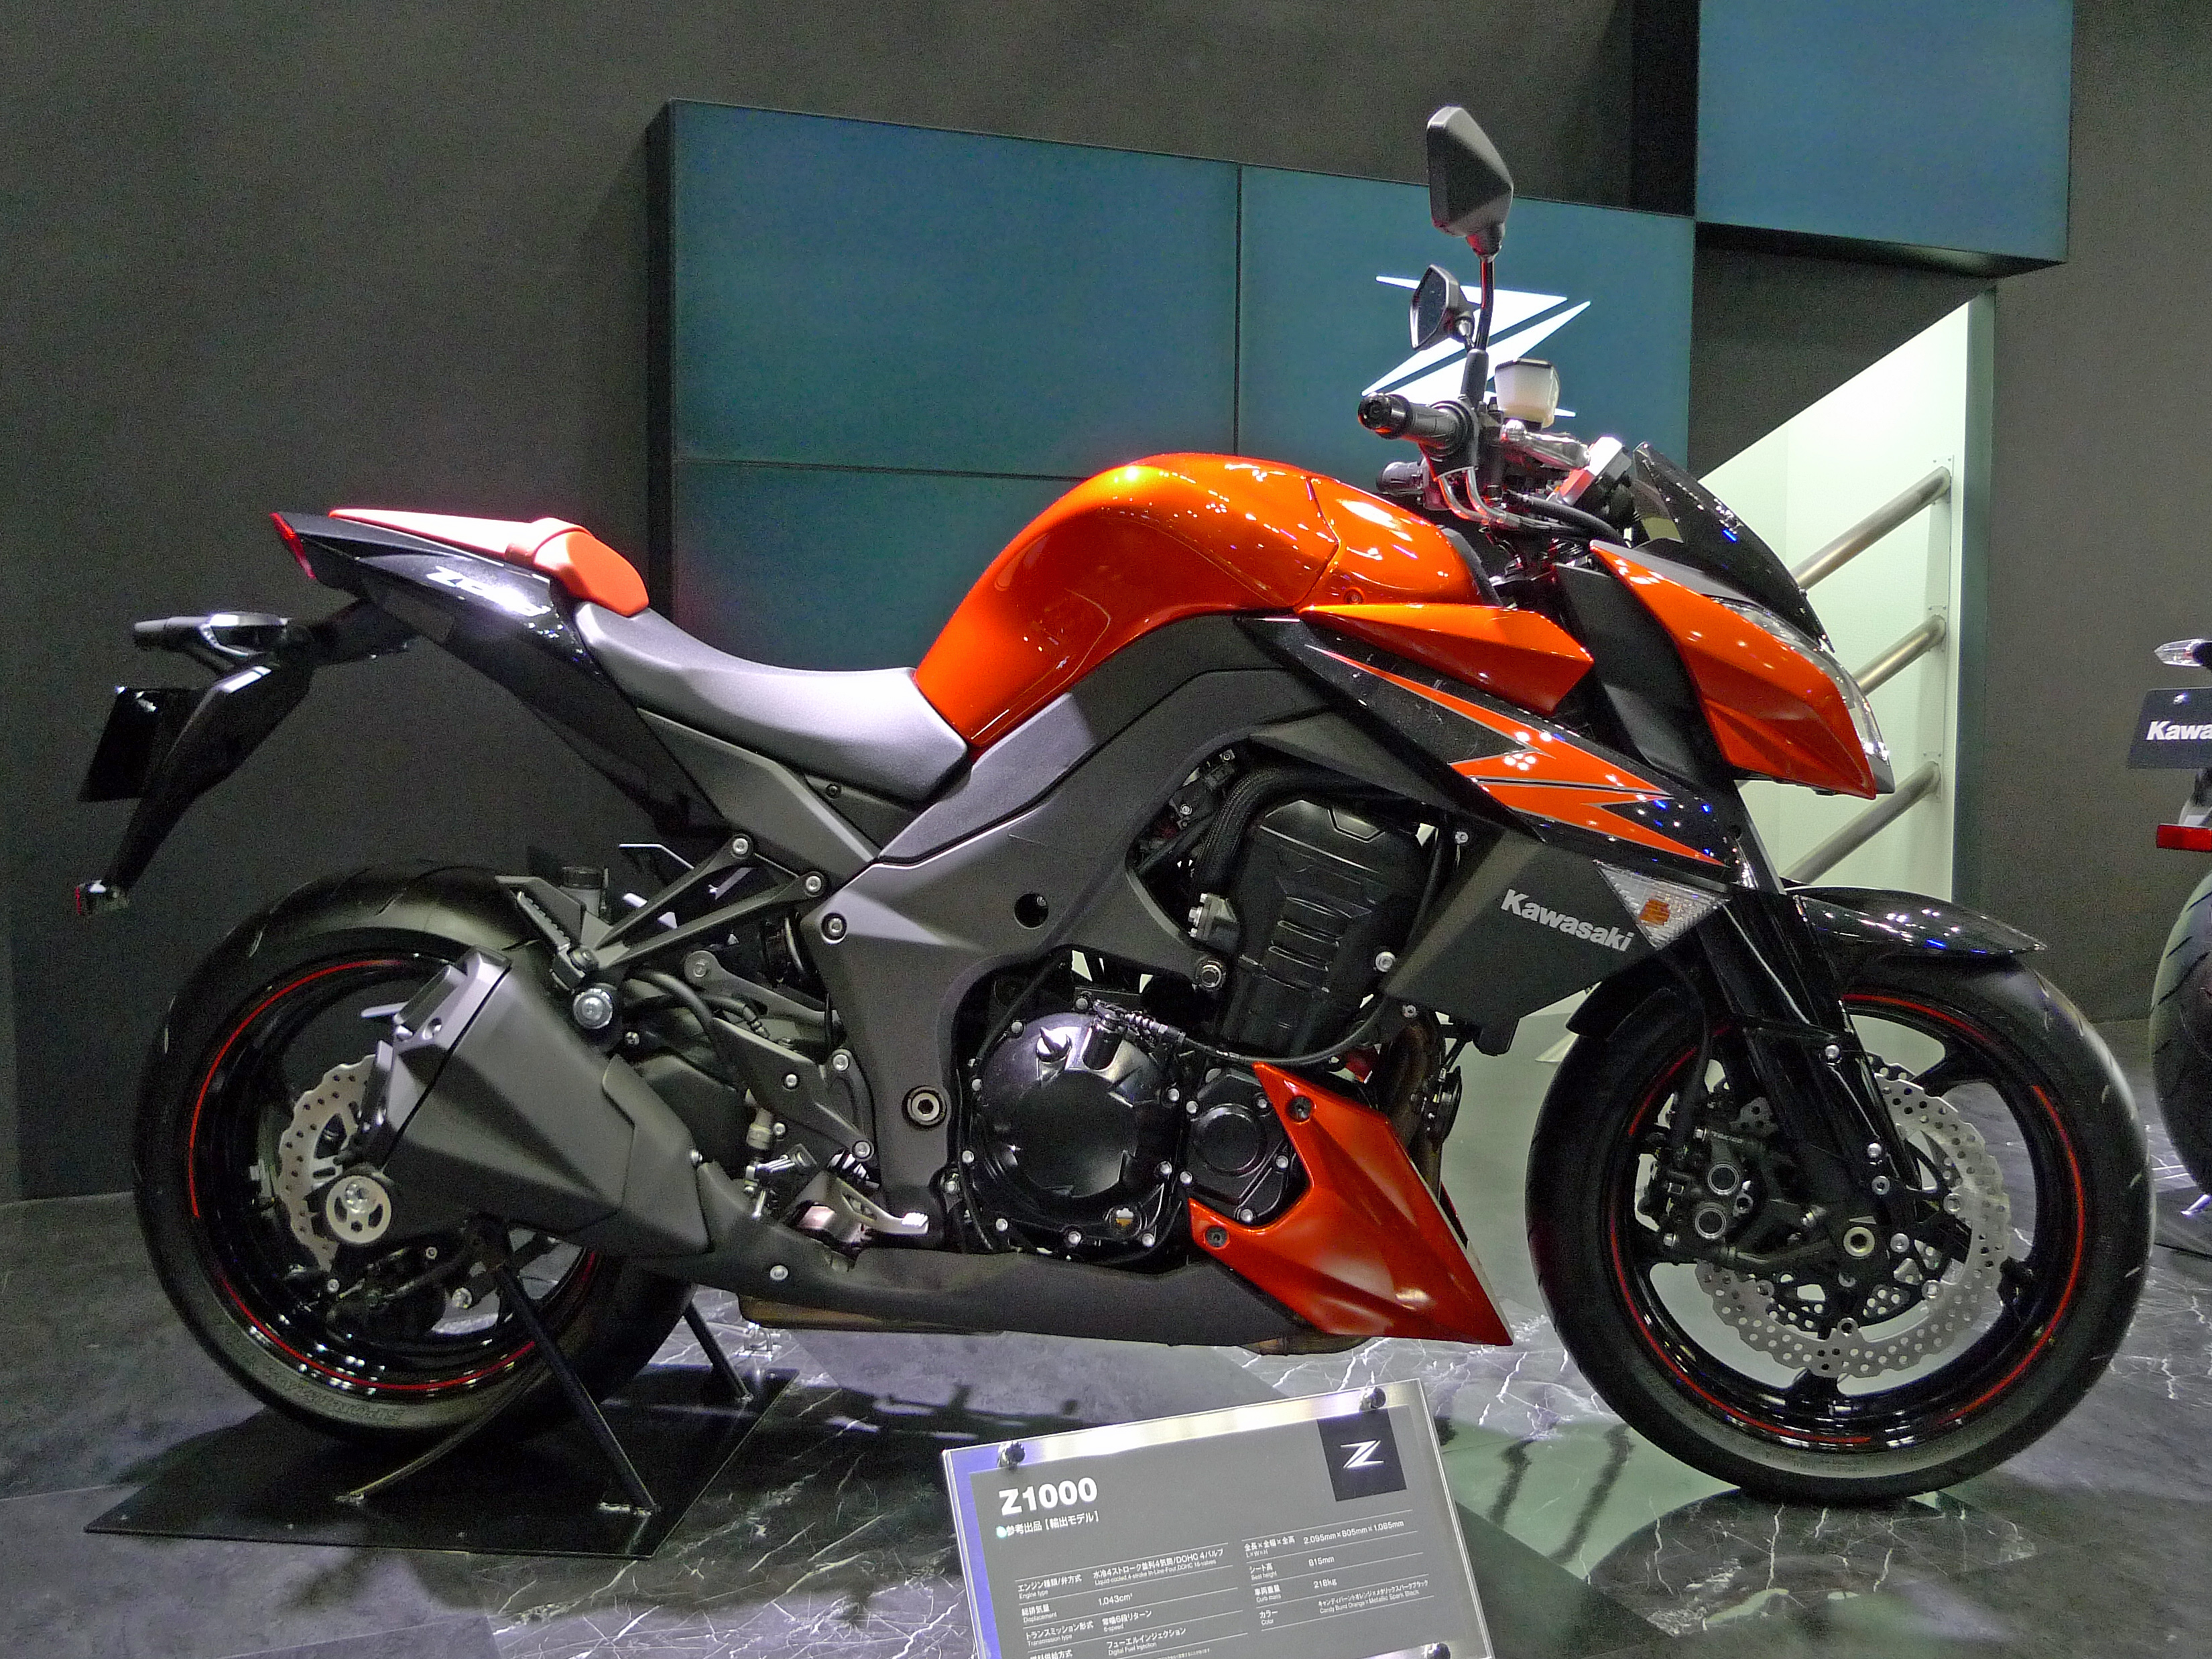 http://upload.wikimedia.org/wikipedia/commons/b/ba/Kawasaki_Z1000_right-side_2011_Tokyo_Motor_Show.jpg